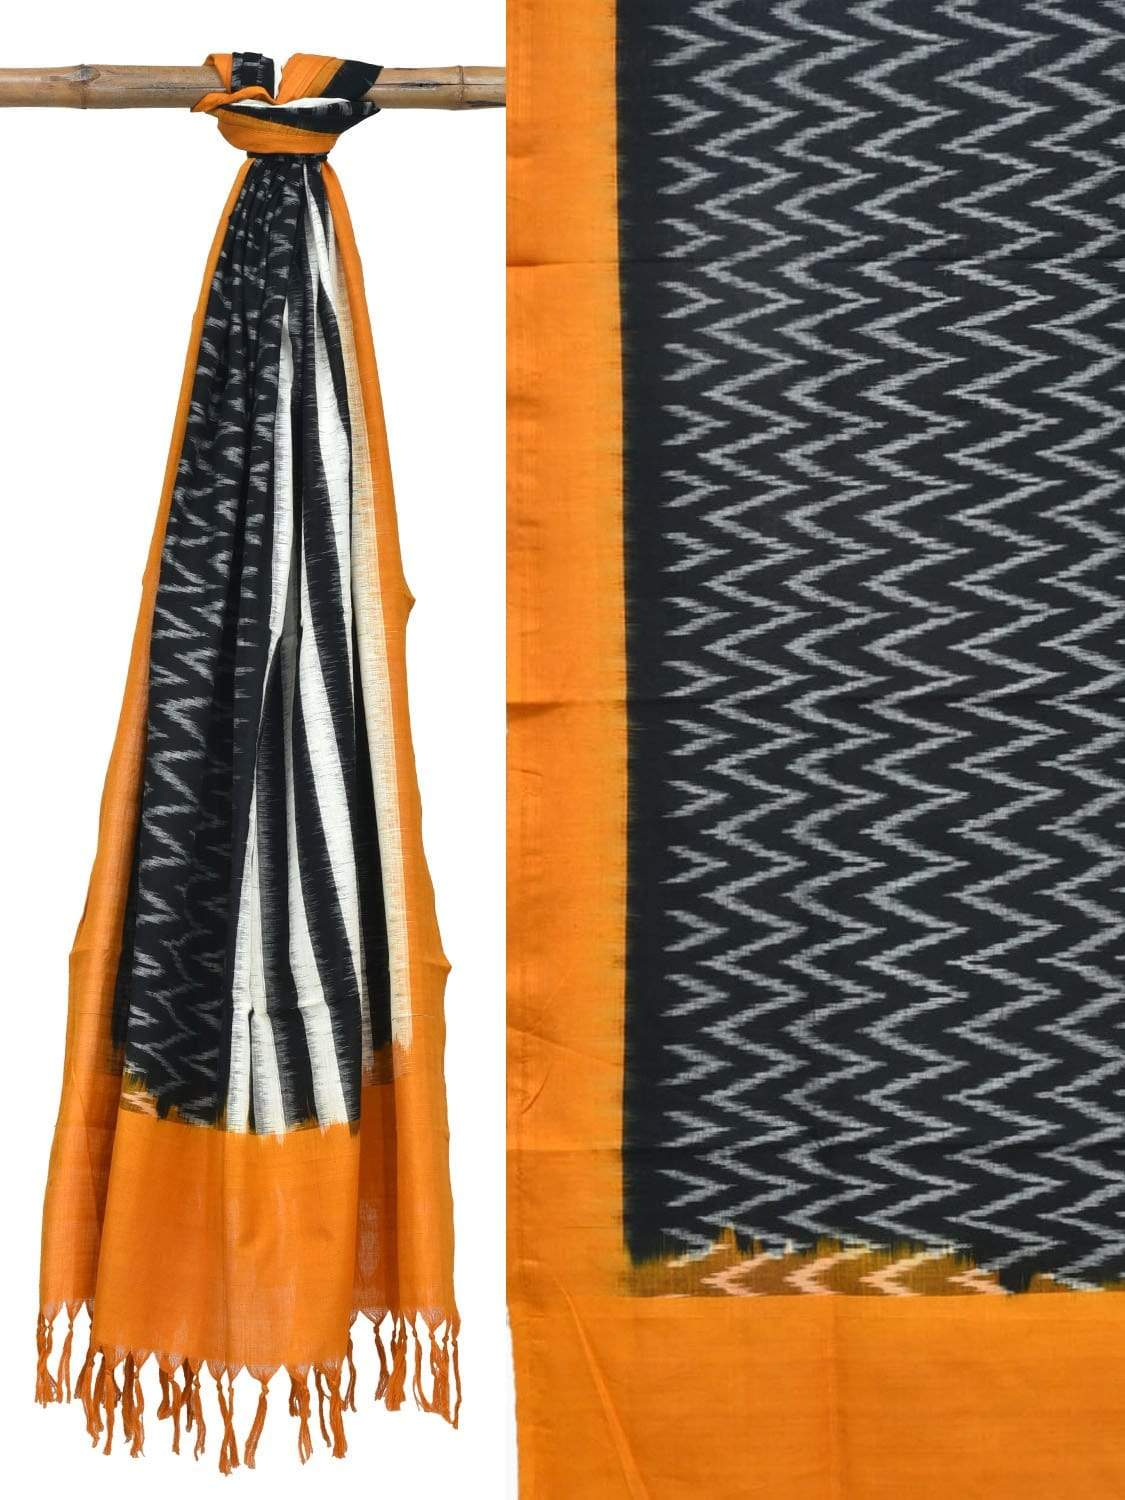 Orange and Black Pochampally Ikat Cotton Handloom Dupatta with Strips and Zig-Zag Design ds1840